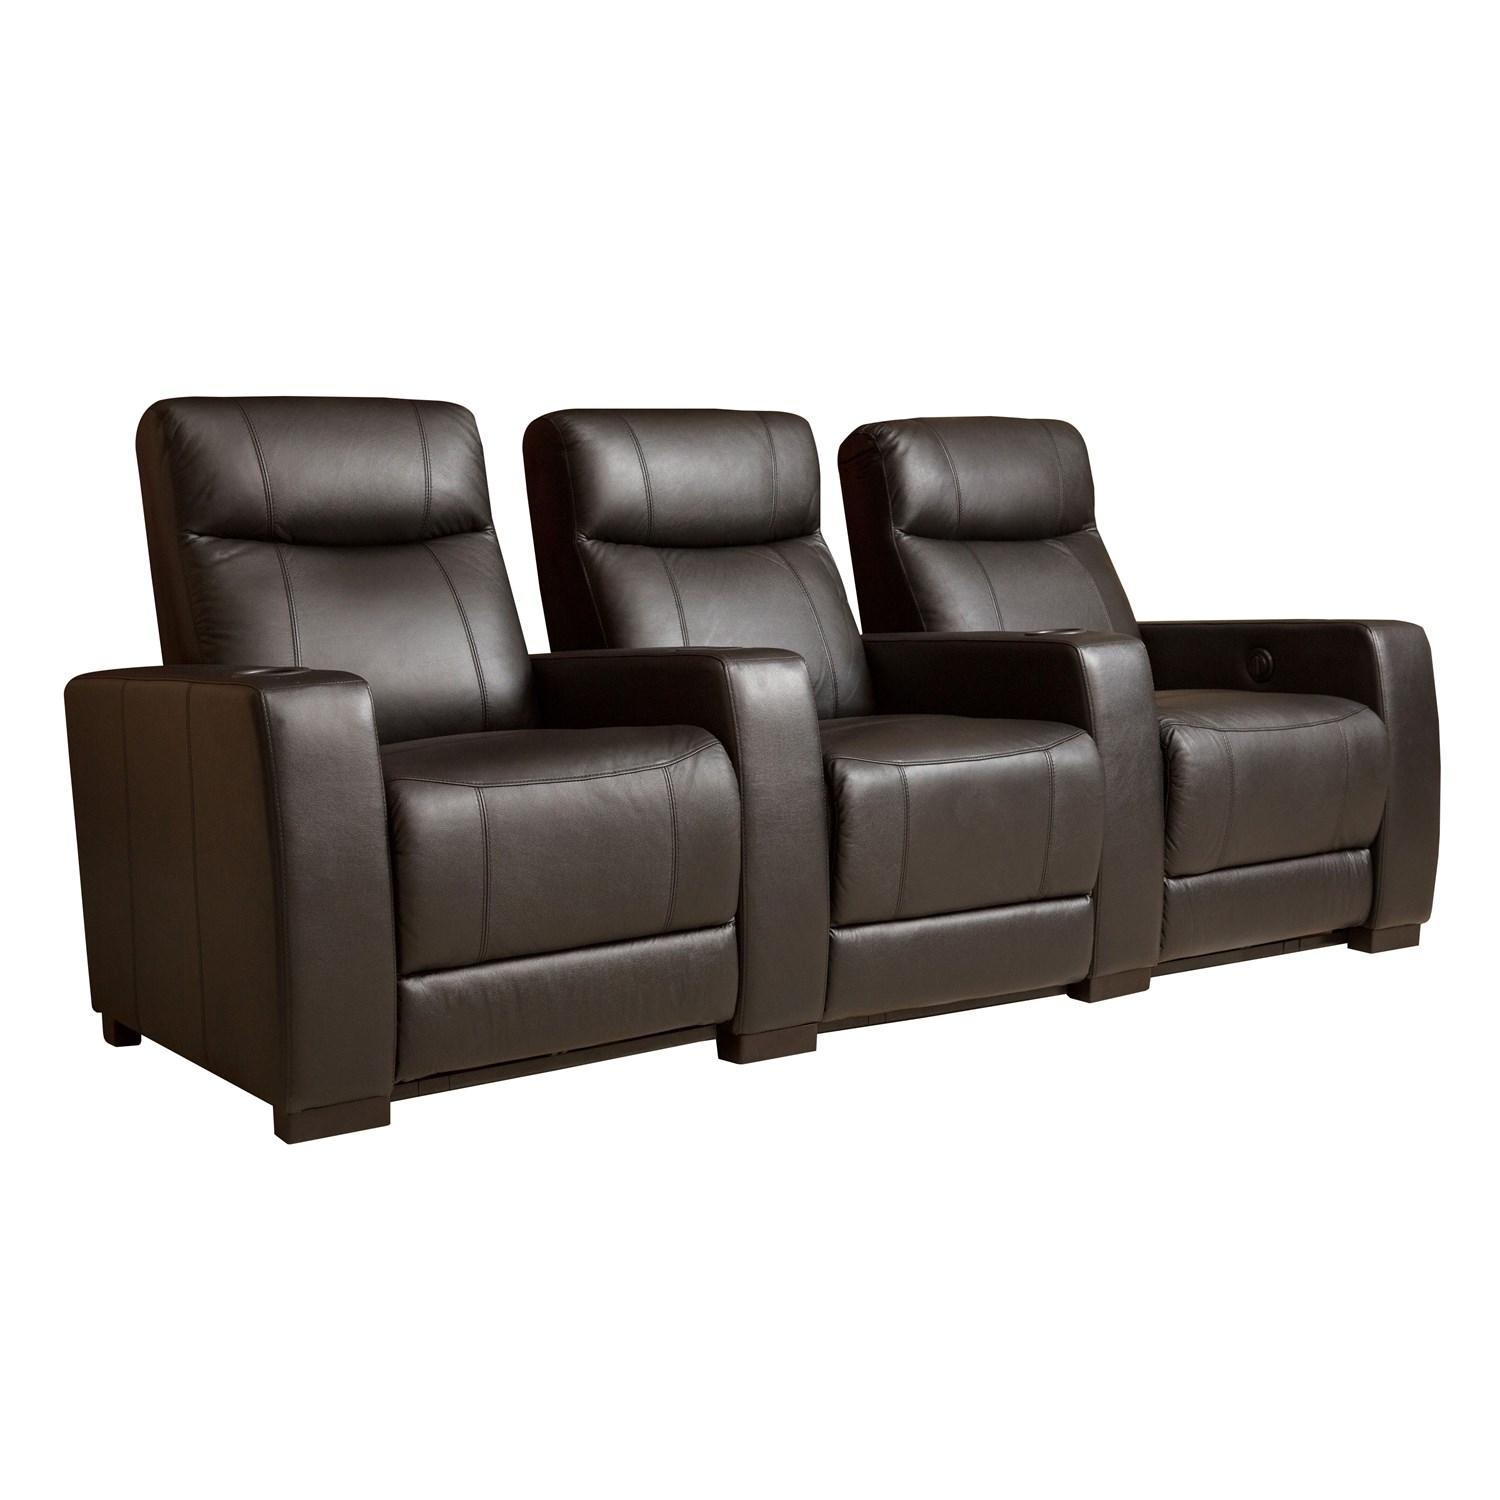 Abbyson Living Sk 1303 Blk Montgomery 3 Piece Top Grain Leather Intended For Abbyson Recliners (Image 9 of 20)